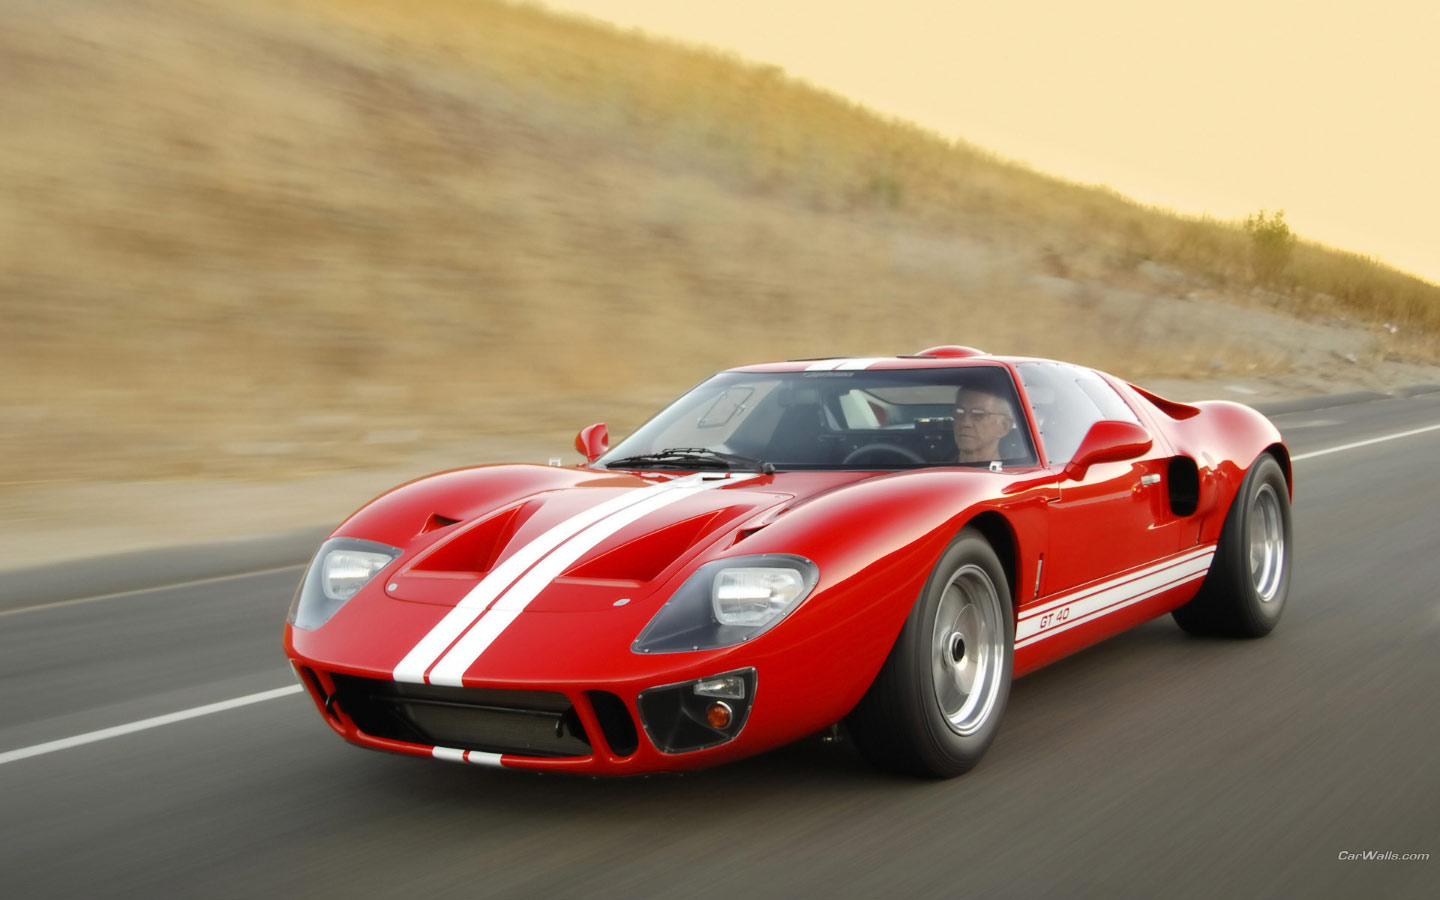 Ford Gt40 Wallpaper 5736 Hd Wallpapers in Cars   Imagescicom 1440x900